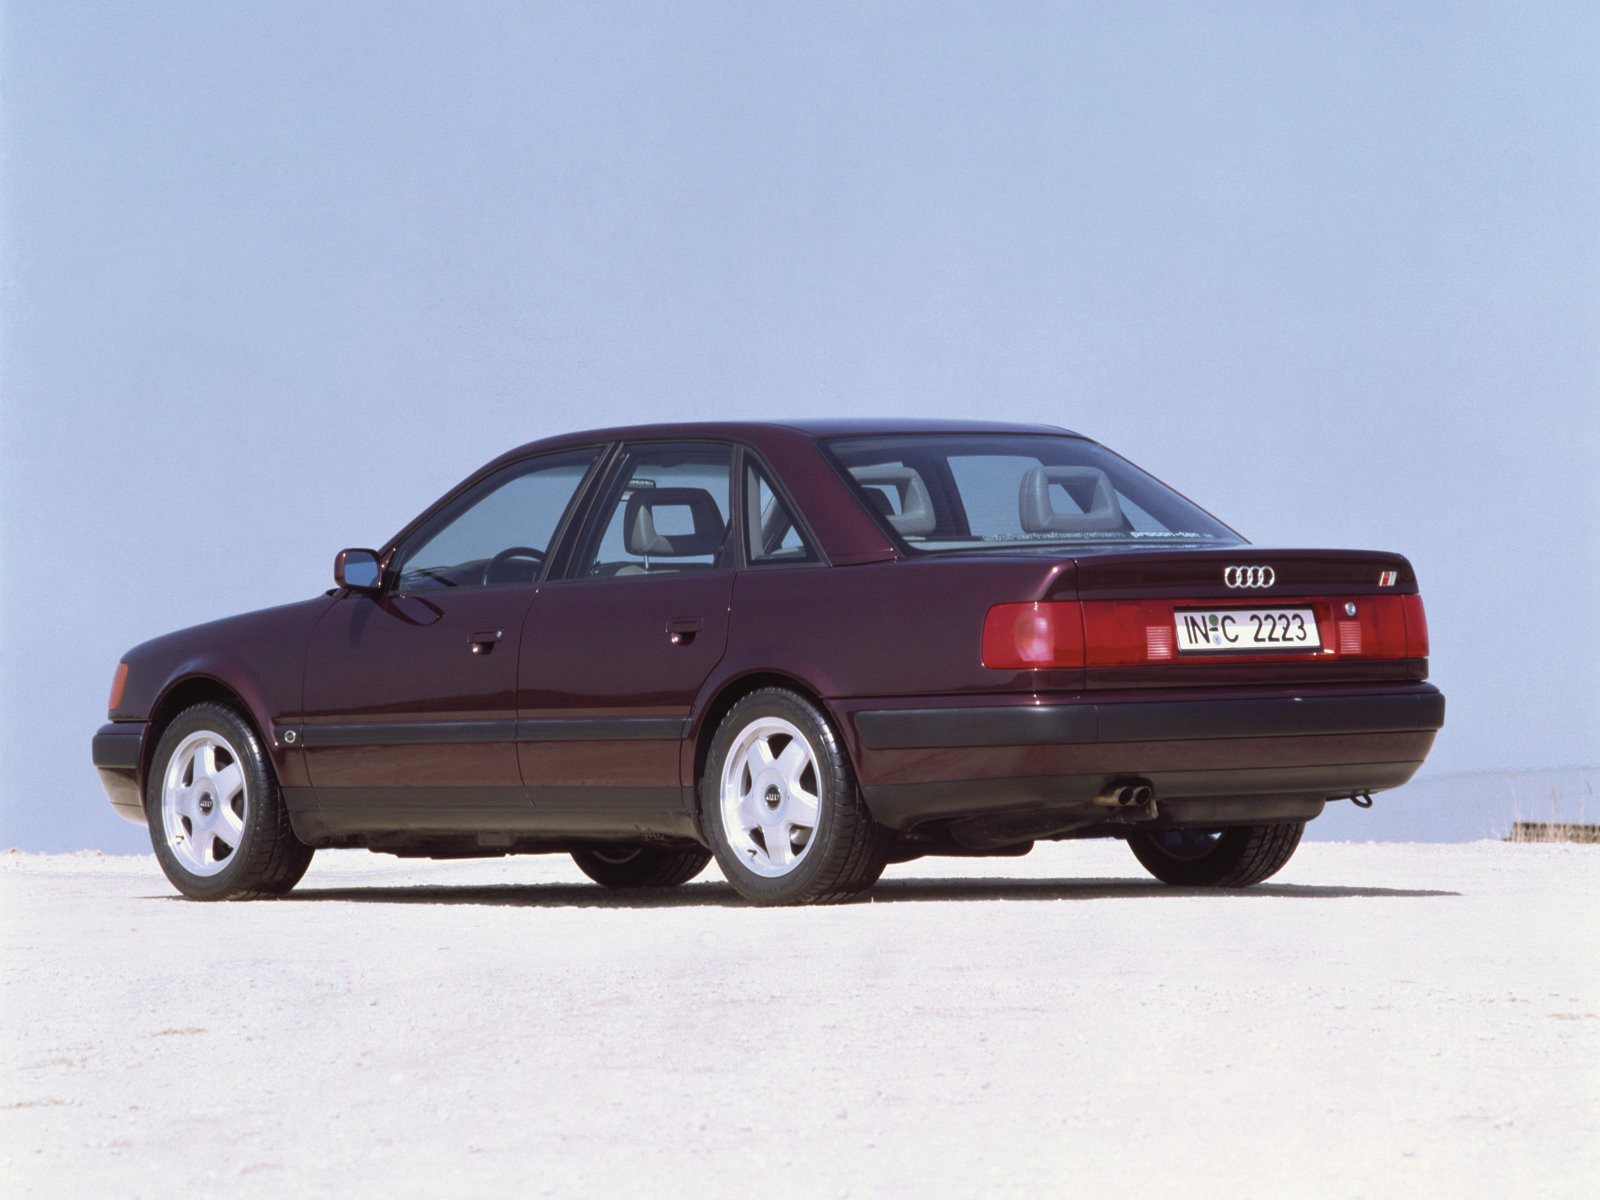 1991 Audi 100 S4 infomation specifications WeiLi